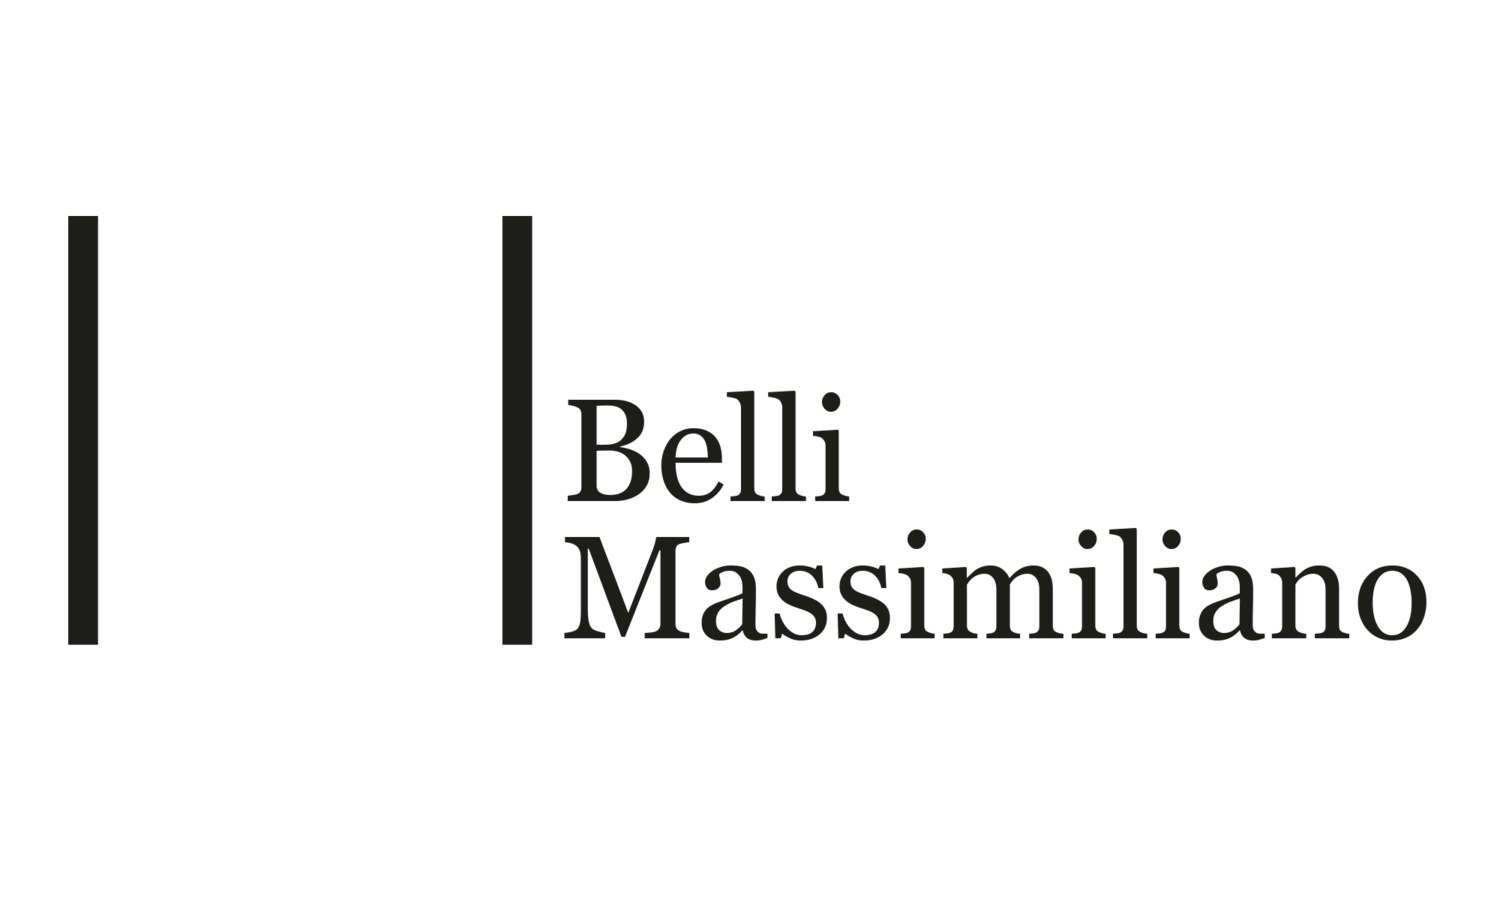 Massimiliano Belli